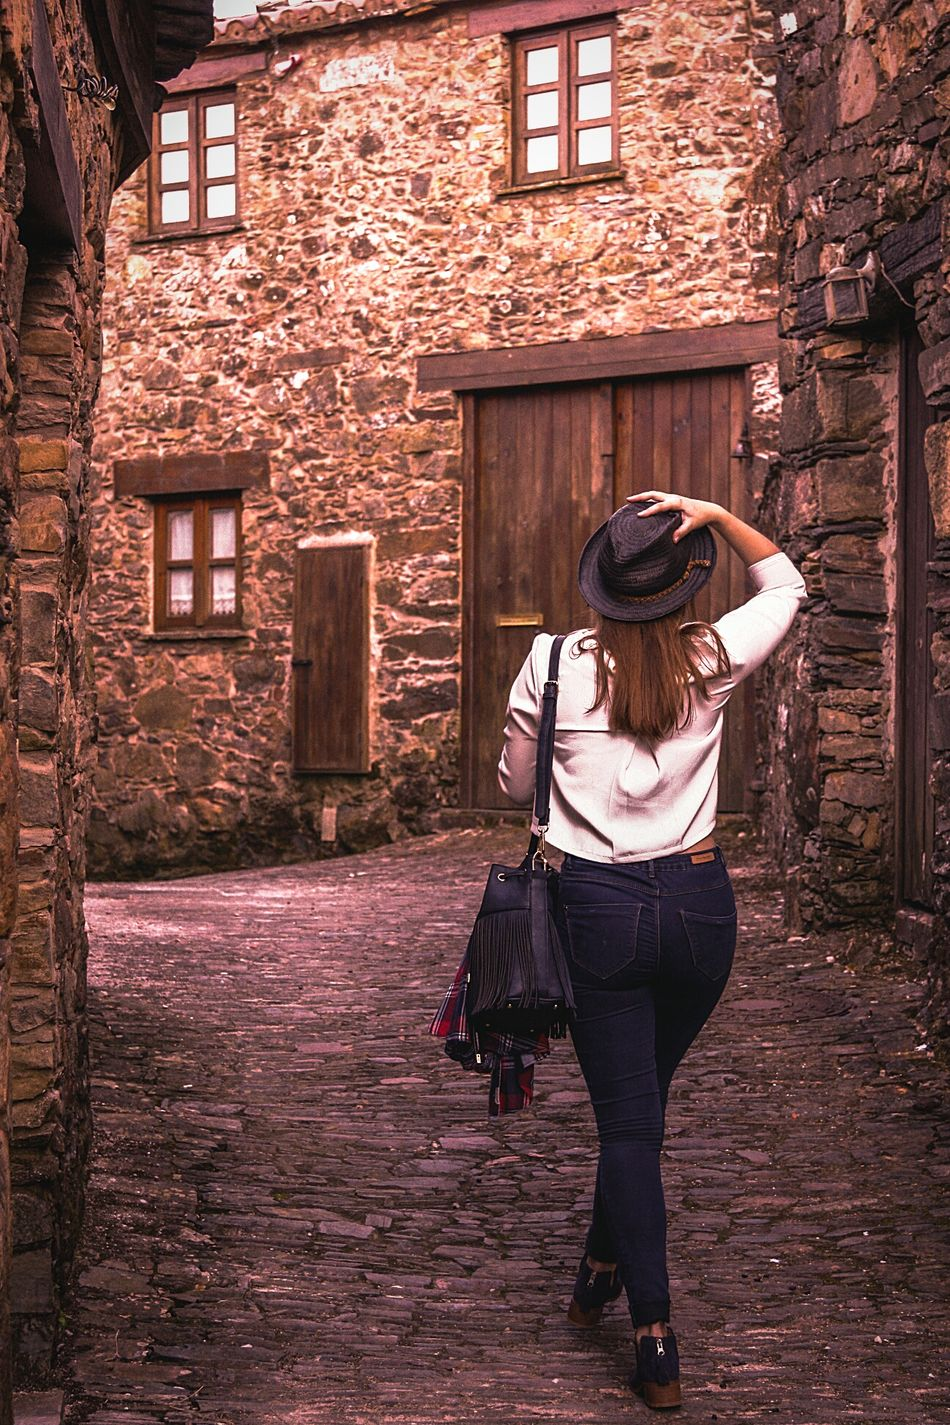 People And Places Architecture Building Exterior Full Length Built Structure Casual Clothing Standing Leisure Activity Innocence Footpath Day Outdoors In Front Of Red City Life Gondramaz Aldeias Do Xisto